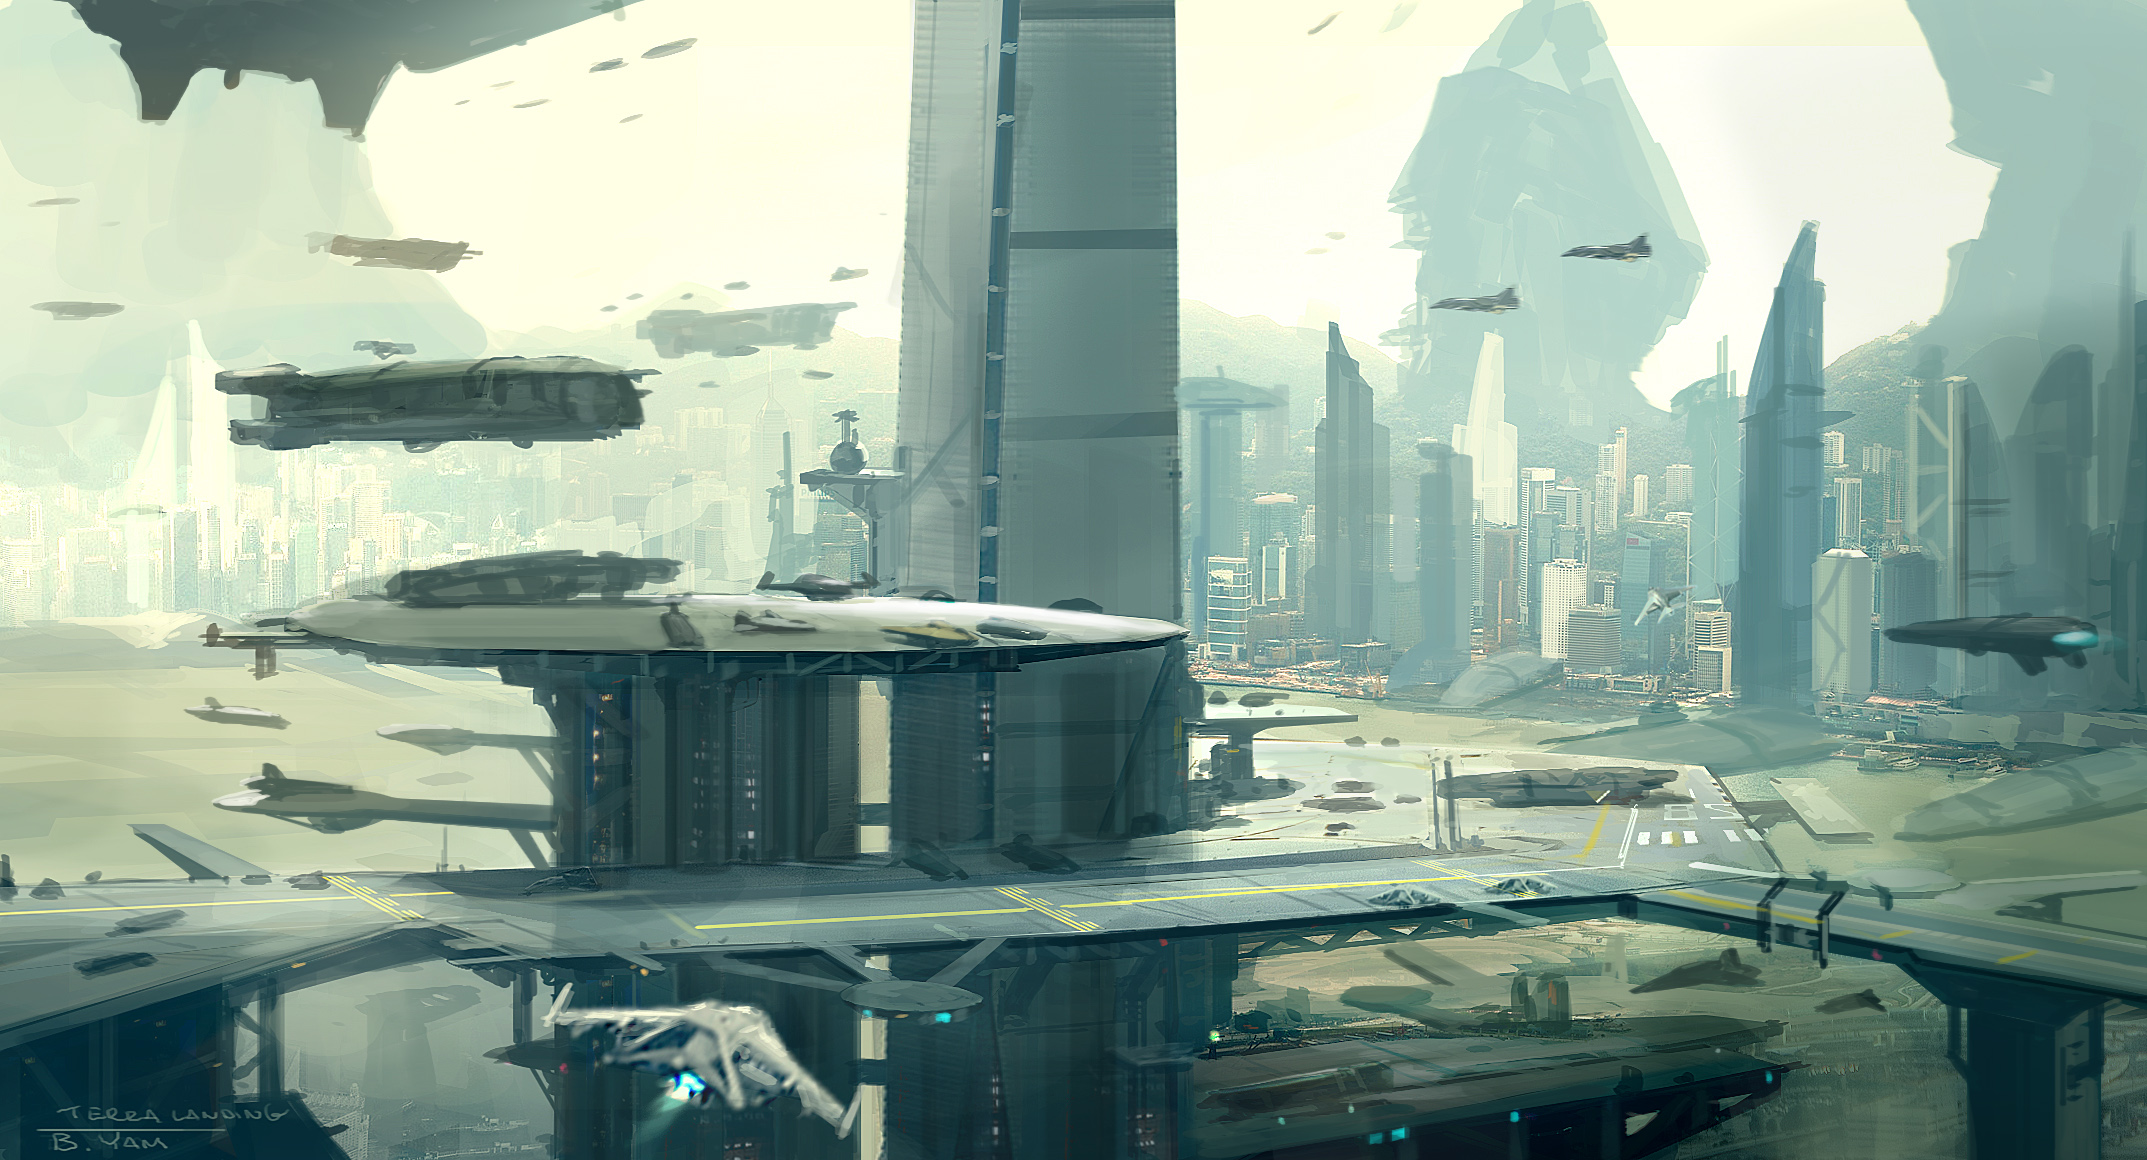 Terra spaceport sketch d color revise2